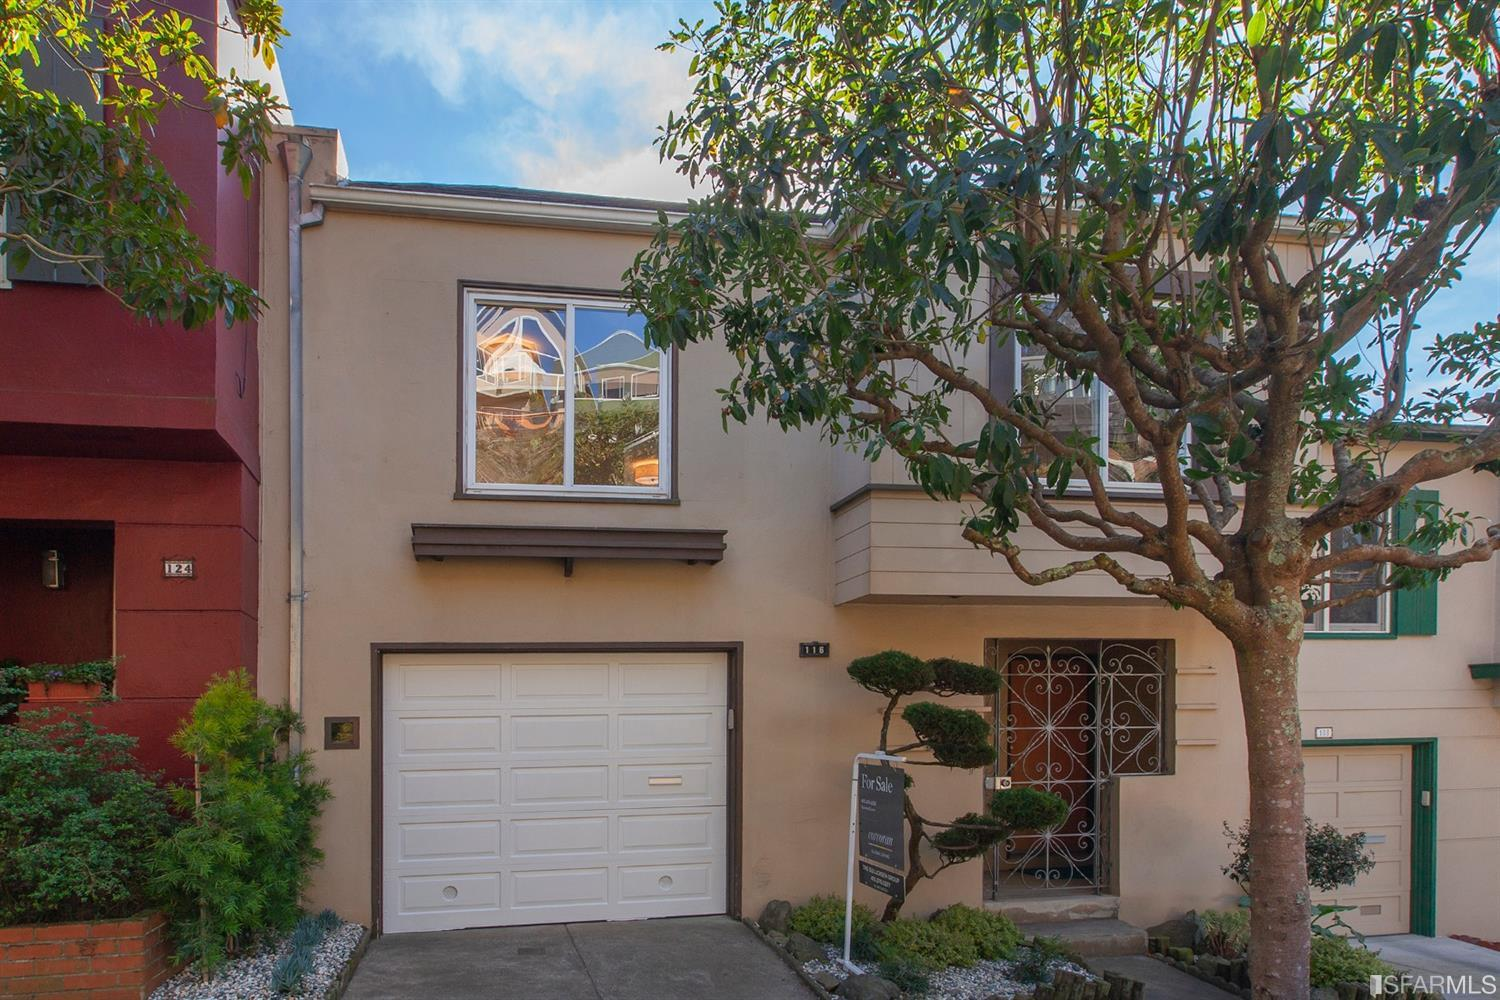 Welcome to 116 Burlwood Drive in Miraloma Park, right on the border of Westwood Highlands.